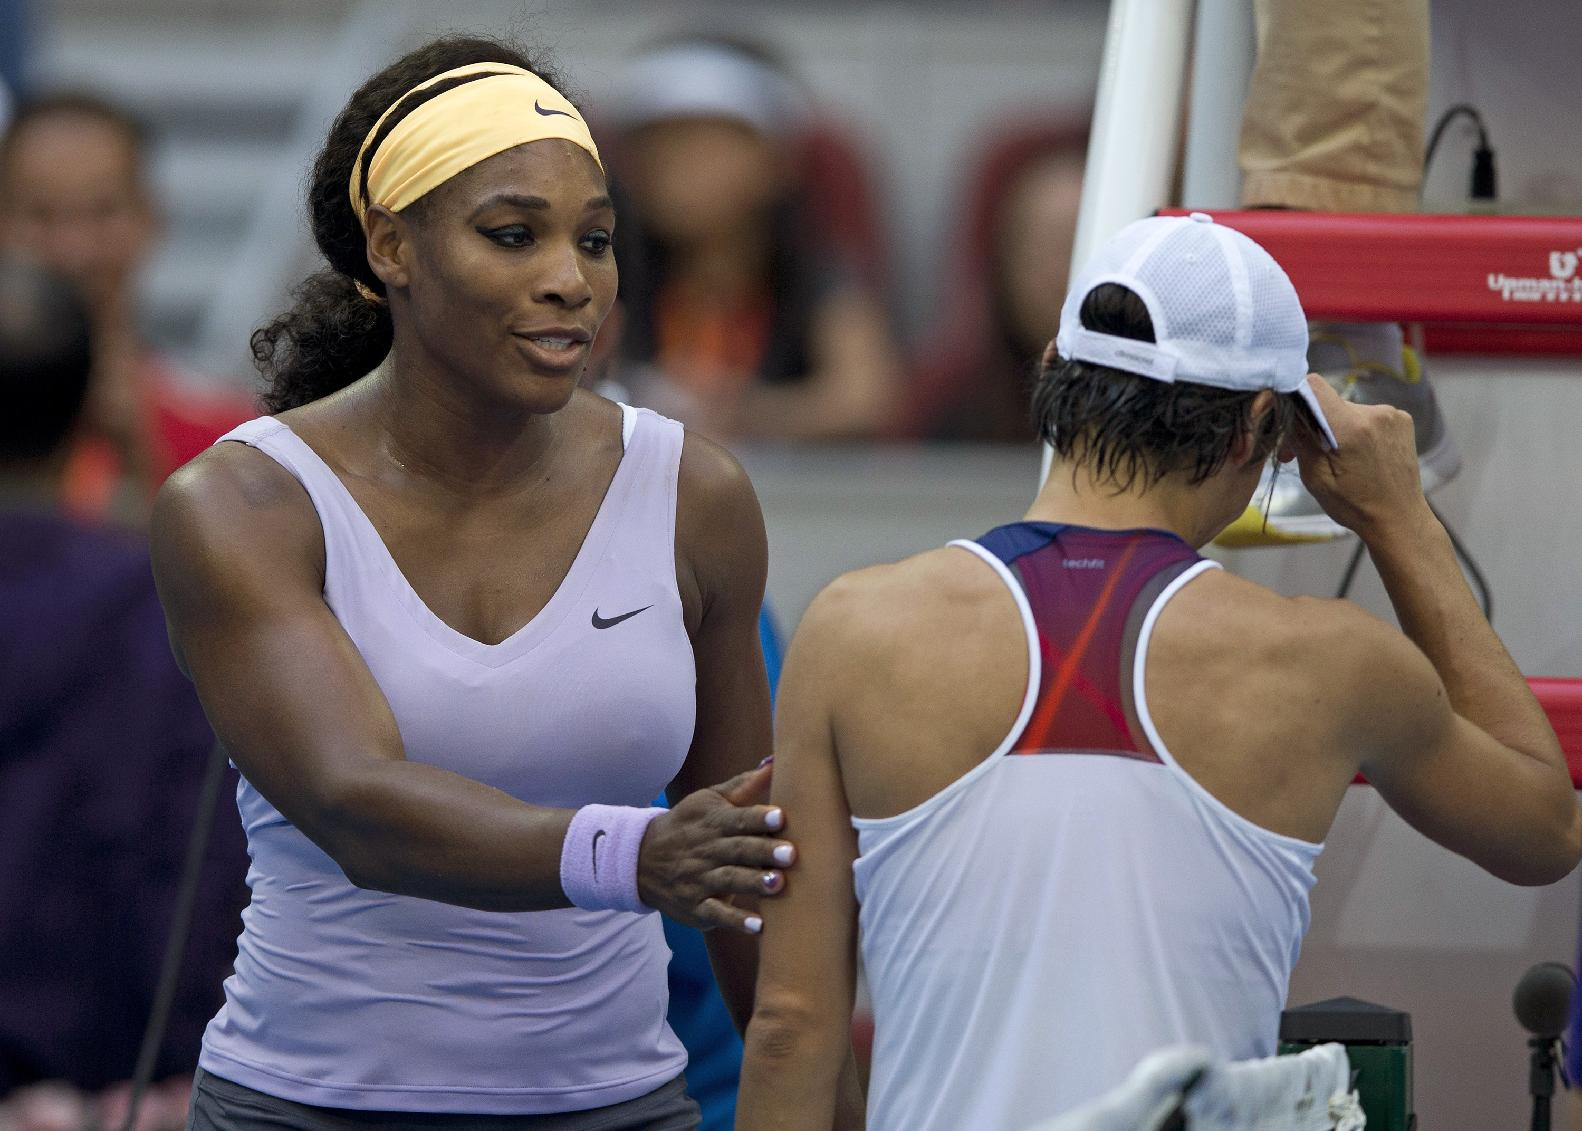 Serena Williams of the U.S., left, talks to Francesca Schiavone of Italy at the net after their second round match of the China Open tennis tournament at the National Tennis Stadium in Beijing, China Tuesday, Oct. 1, 2013. Williams won 6-4, 7-5